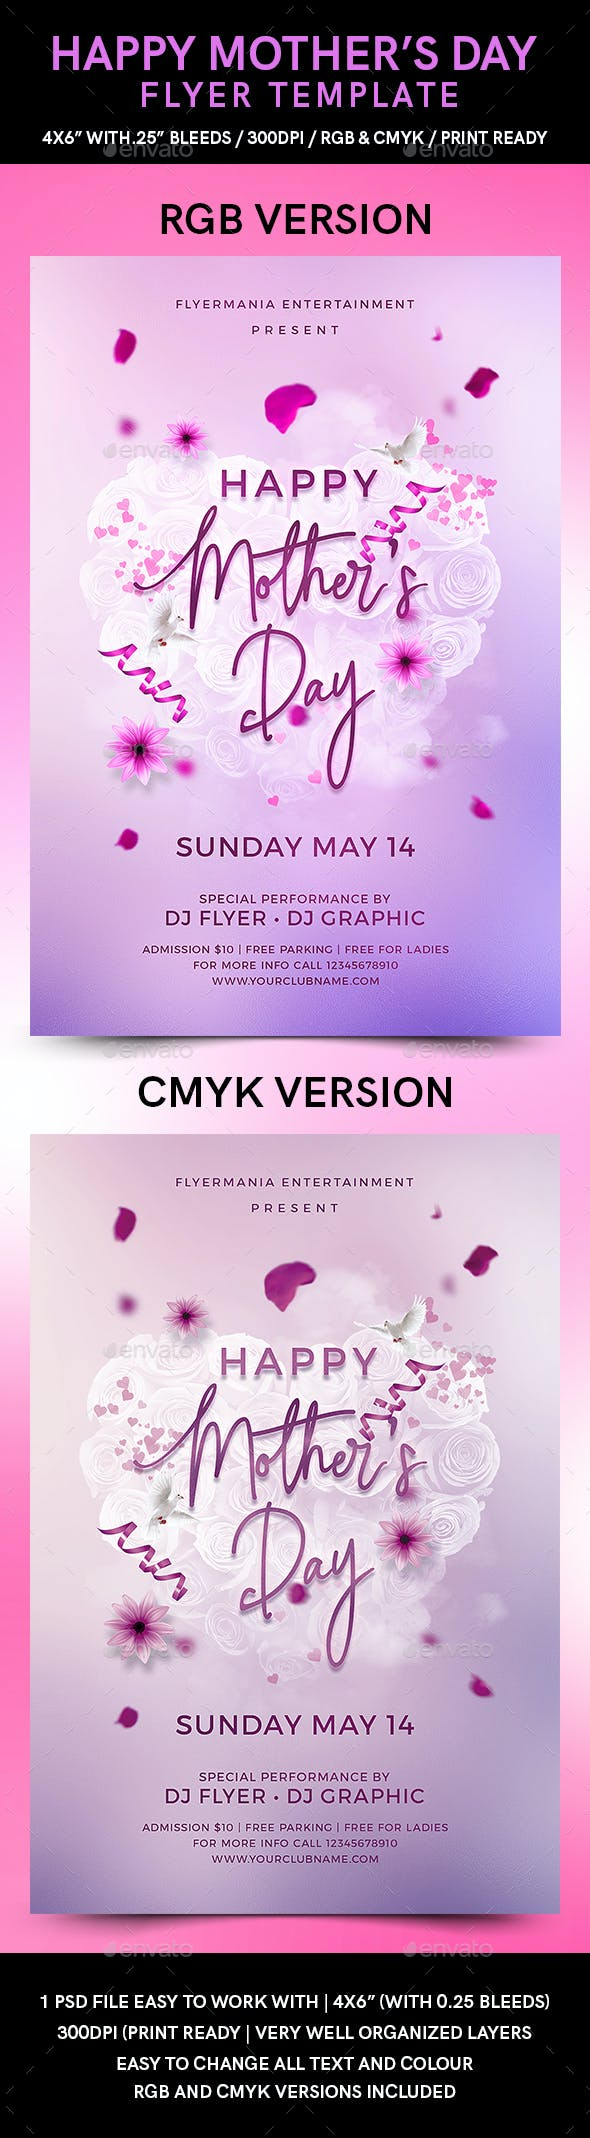 happy mother s day flyer template by flyermania graphicriver